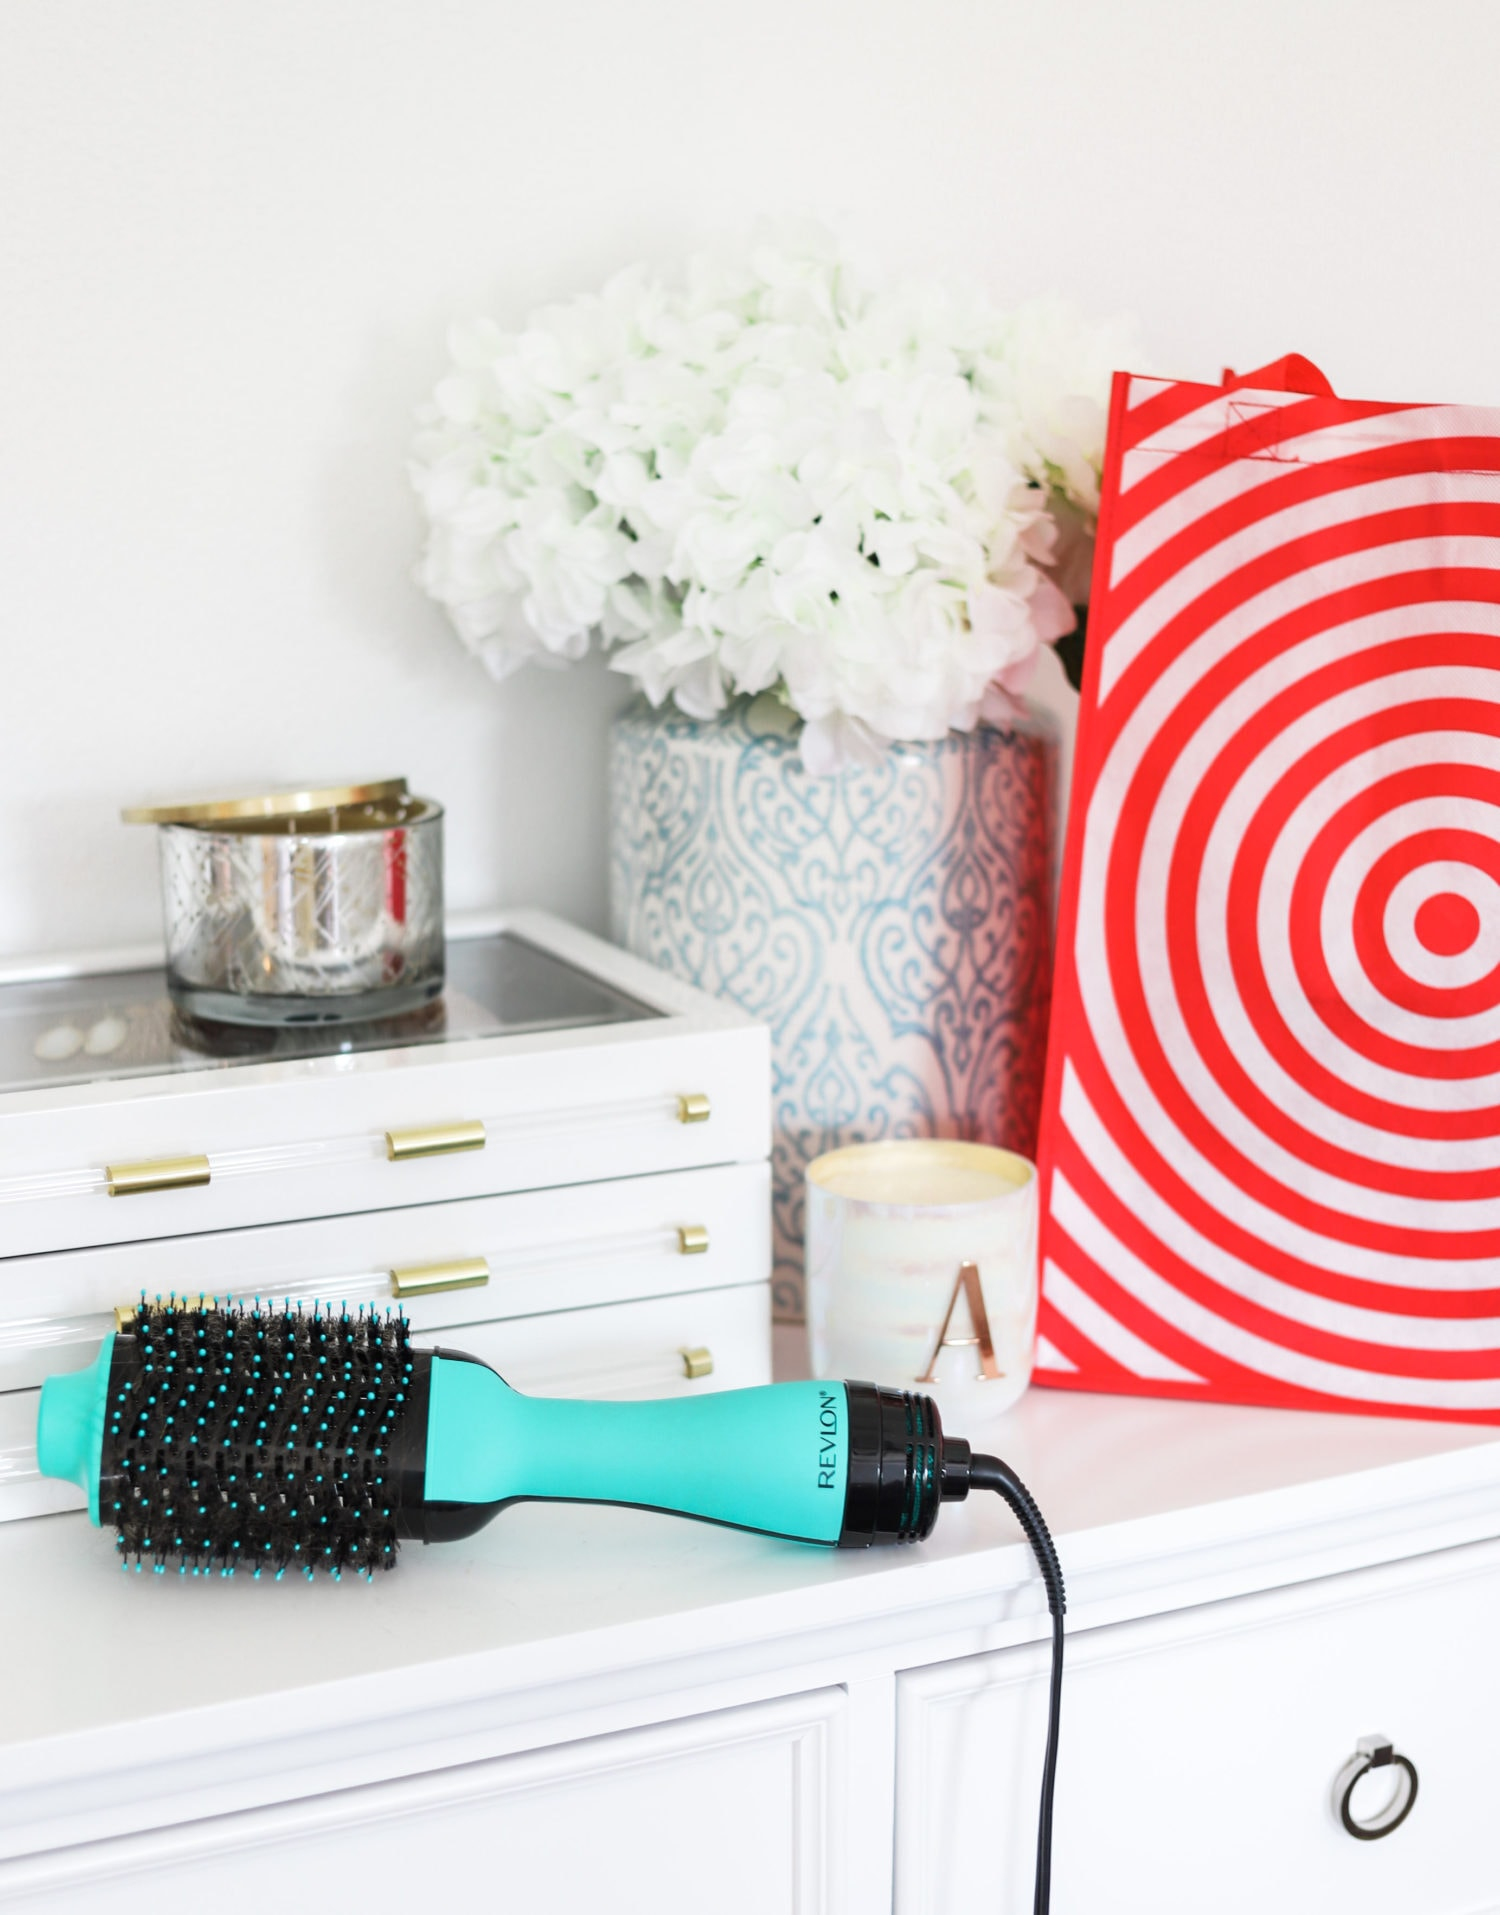 How to get a salon-quality blowout at home with the Revlon One-Step Volumizer and Hair Dryer in Orlando, Florida beauty blogger's easy step-by-step video tutorial. Teal color is exclusive to Target